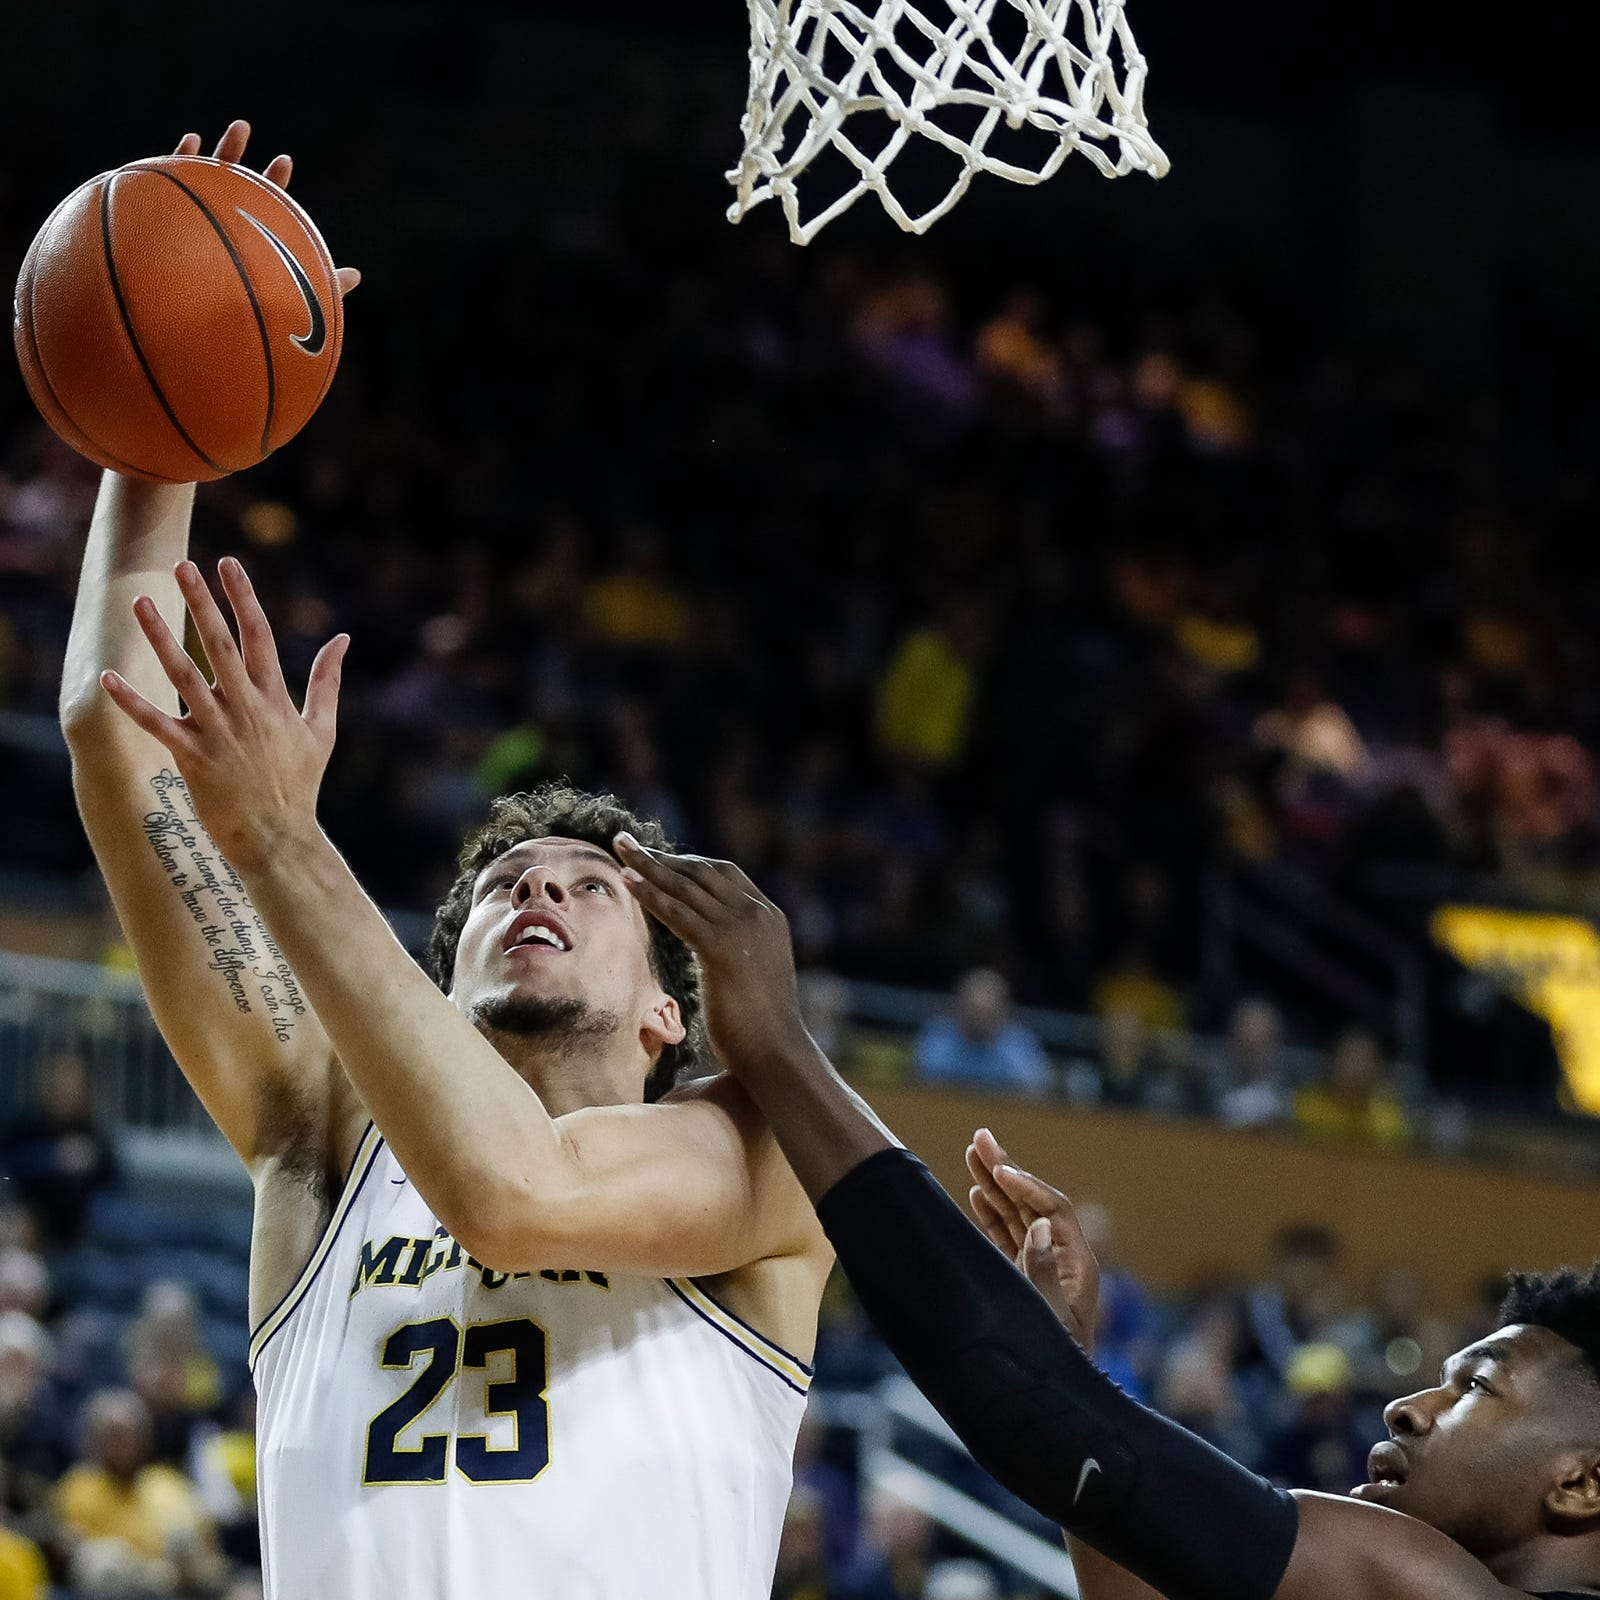 Michigan basketball: Brandon Johns improving; can he crack rotation?